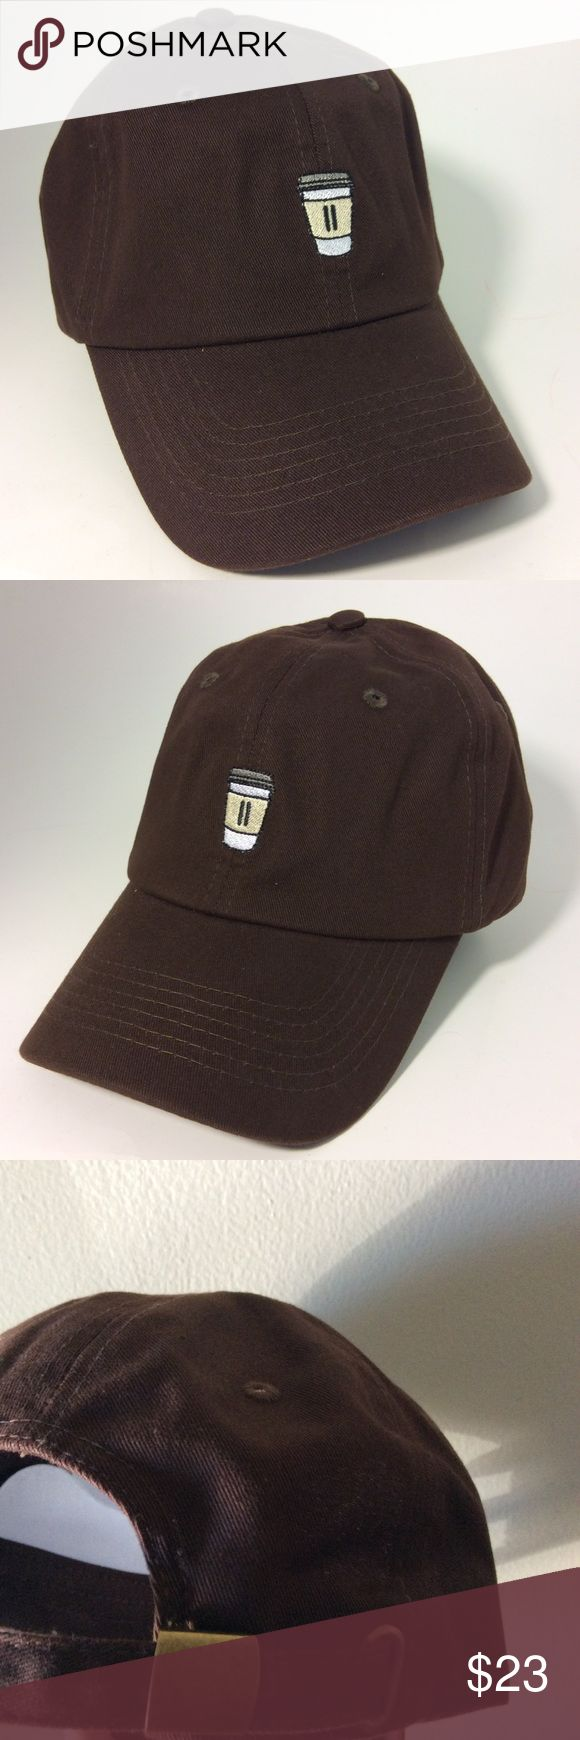 Coffee Cup Dad Hat NWT Brown, adjustable hat with tuck pocket NEW UNISEX___Ignore tags: huf, weed, marijuana, kush, obey, stussy, dope, trill, Blvck, boy london, paris, joggers,  trap style, rave, rare, huf, blvck fashion, trill, pipe, dabber, glass, sad, me, goth, goth girl, woes, the six, 6ix, ovo, blvck, Brooklyn, London, pikachu, 6 God, glitter, naps, mobb, asap, long style, Ovo, snapback, cap Accessories Hats